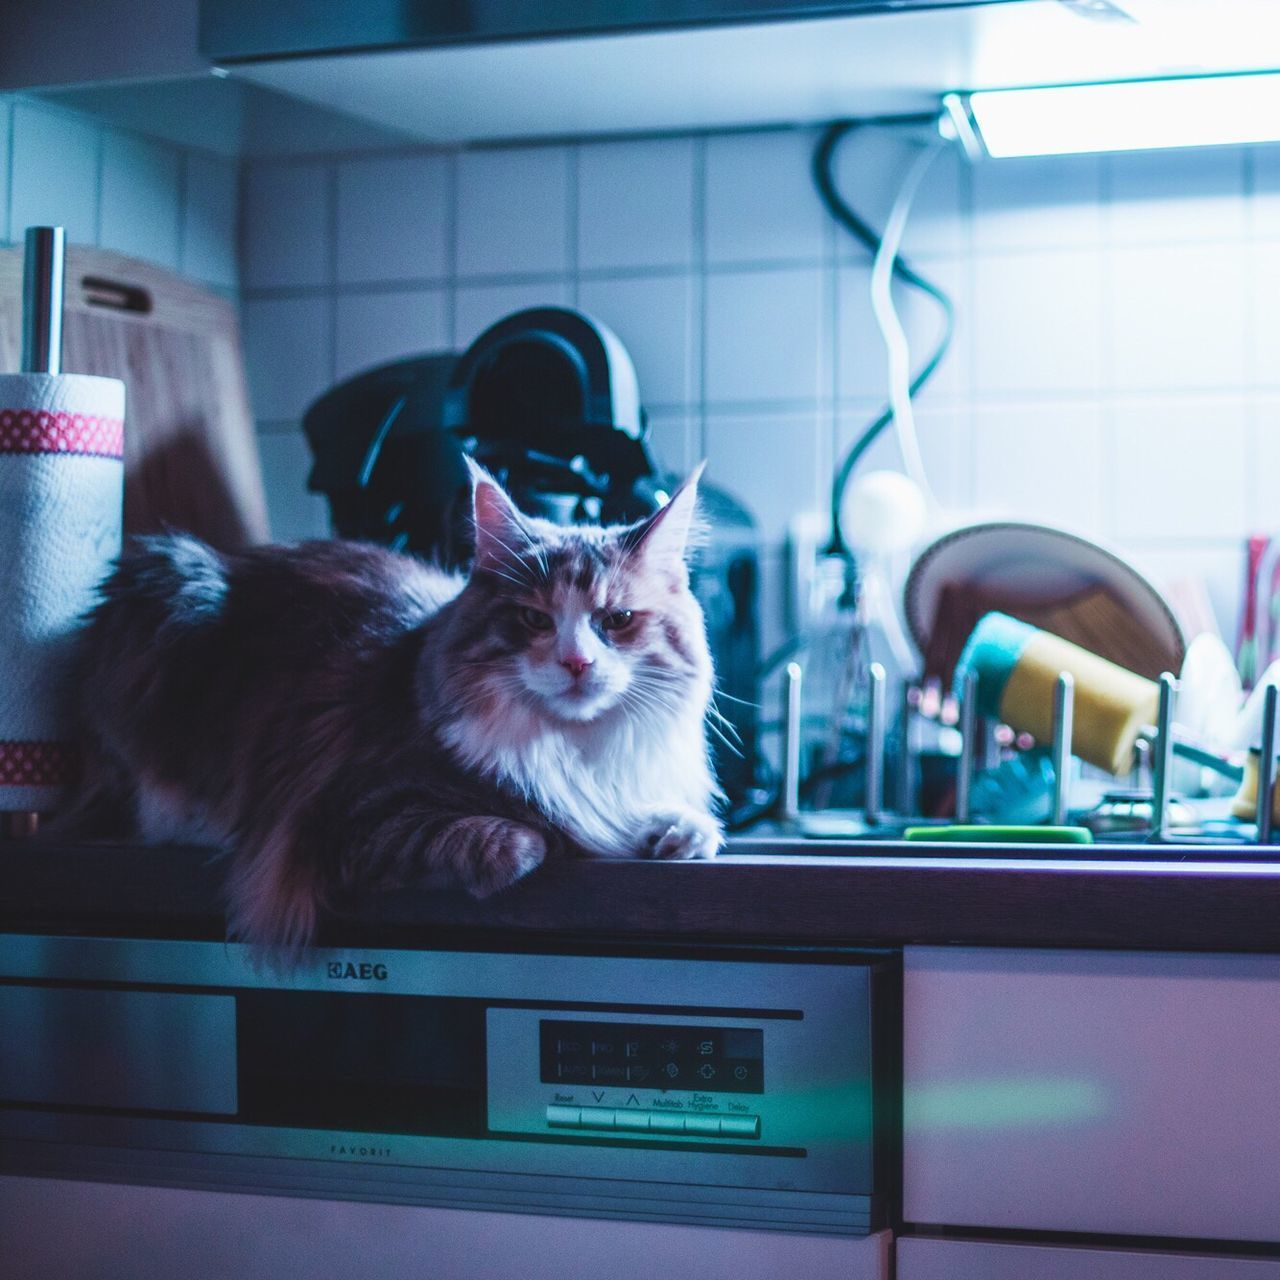 domestic cat, pets, domestic animals, animal themes, mammal, feline, one animal, cat, indoors, portrait, no people, looking at camera, day, animal hospital, close-up